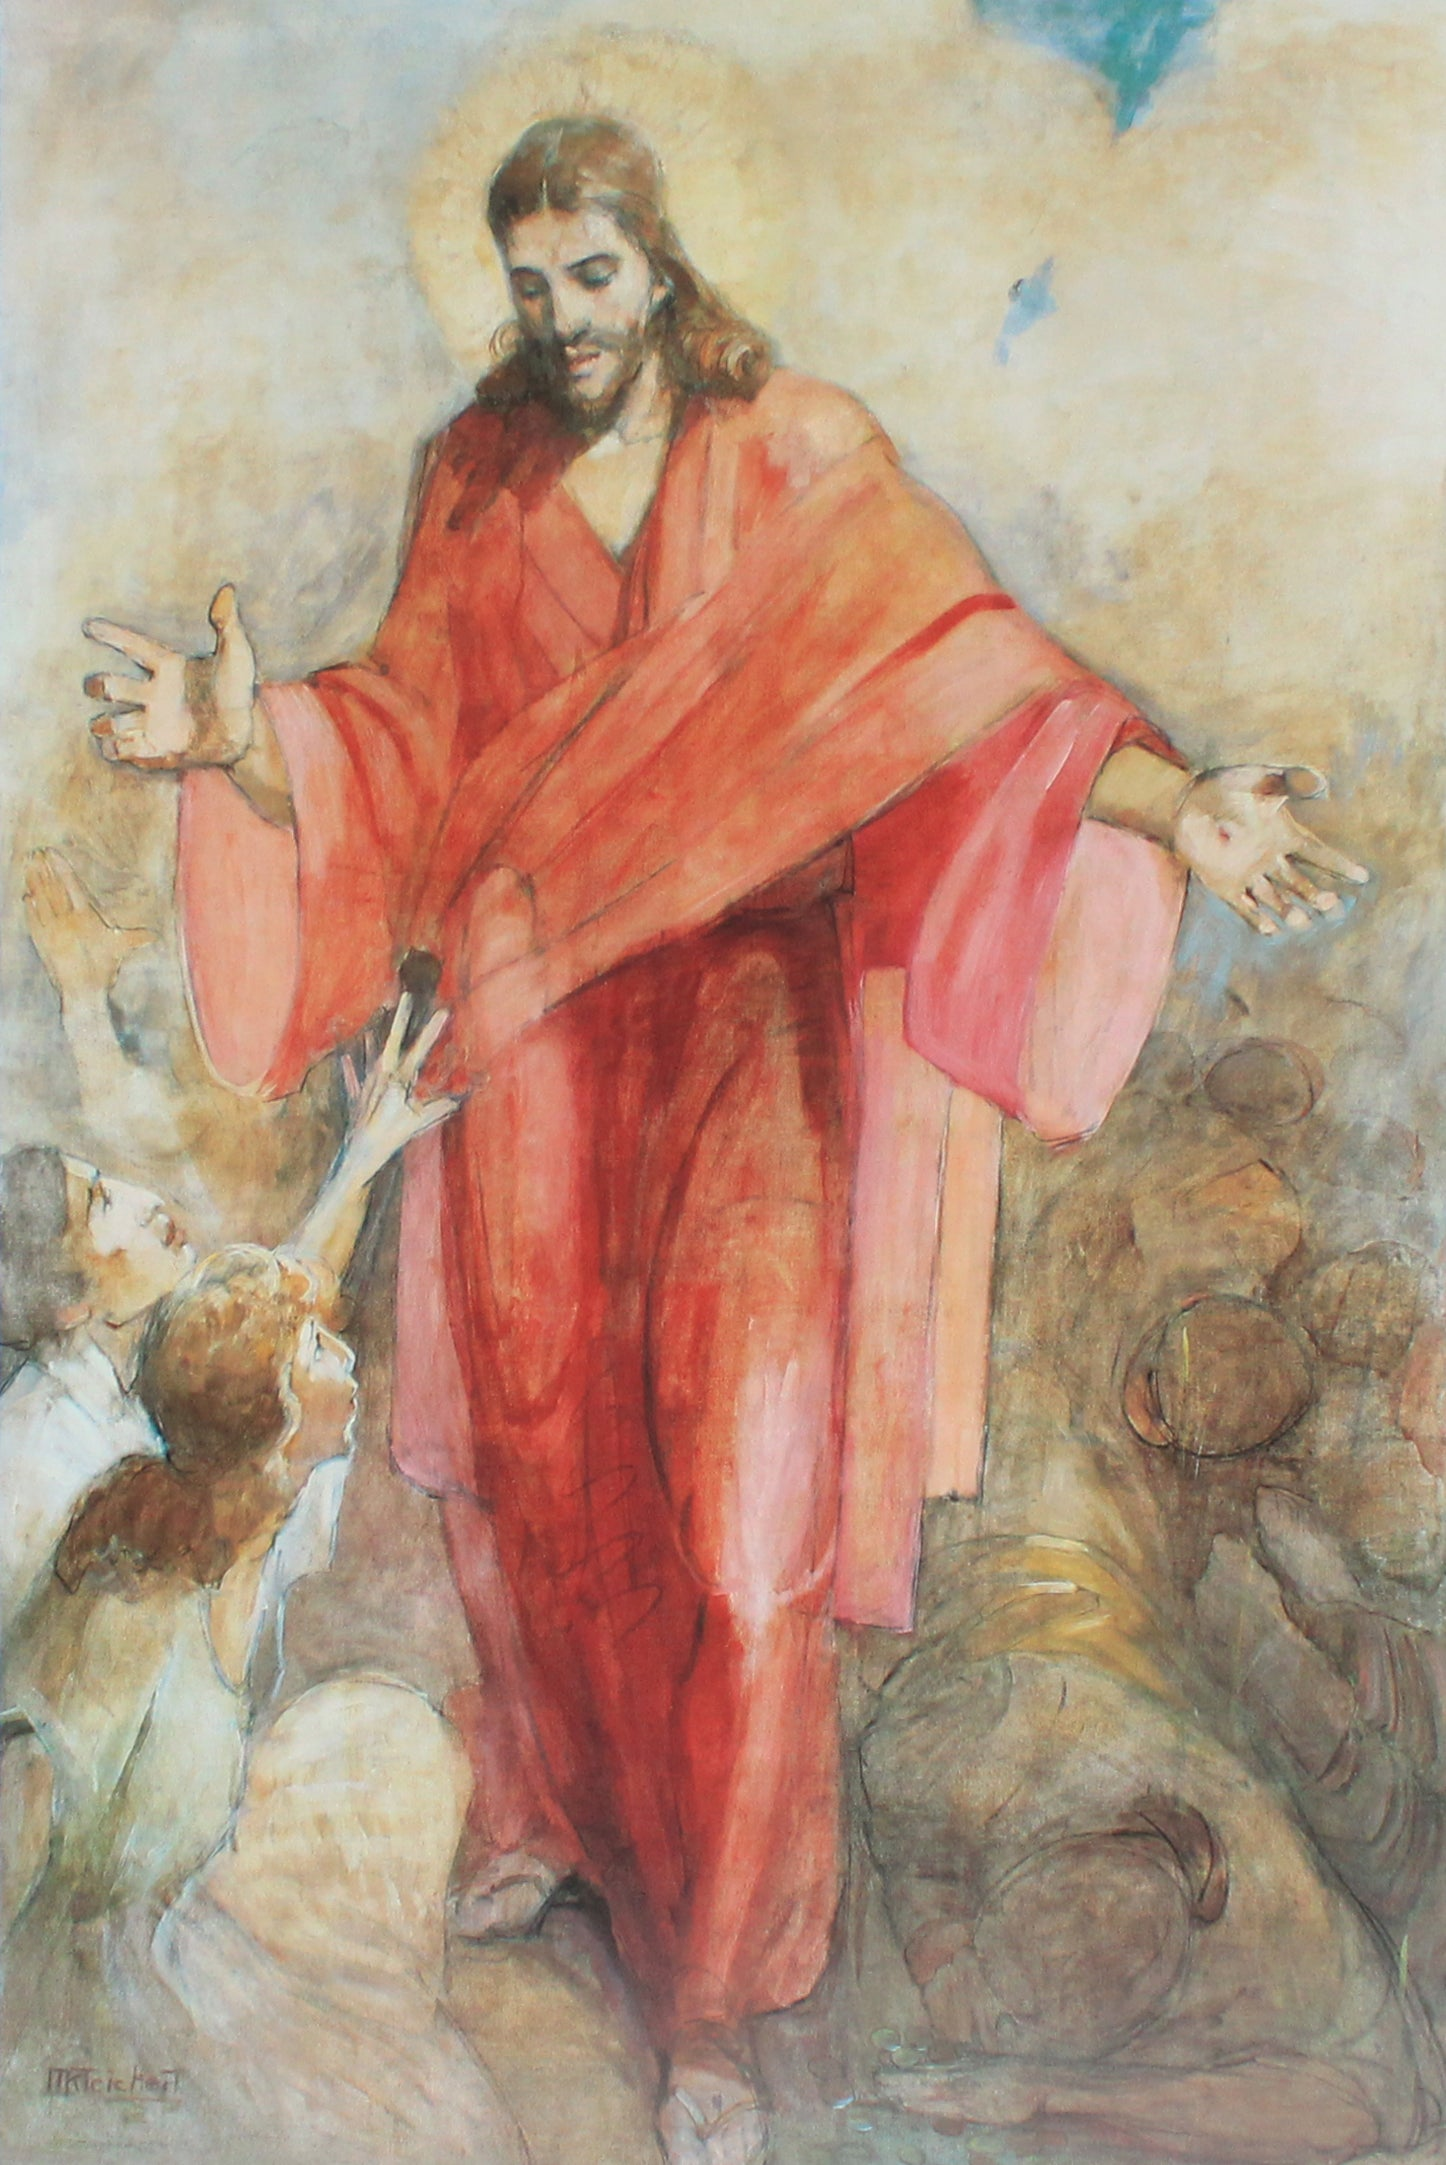 Jesus Christ in a Red Robe by Minerva Teichert prints for sale at High Desert Dry Goods